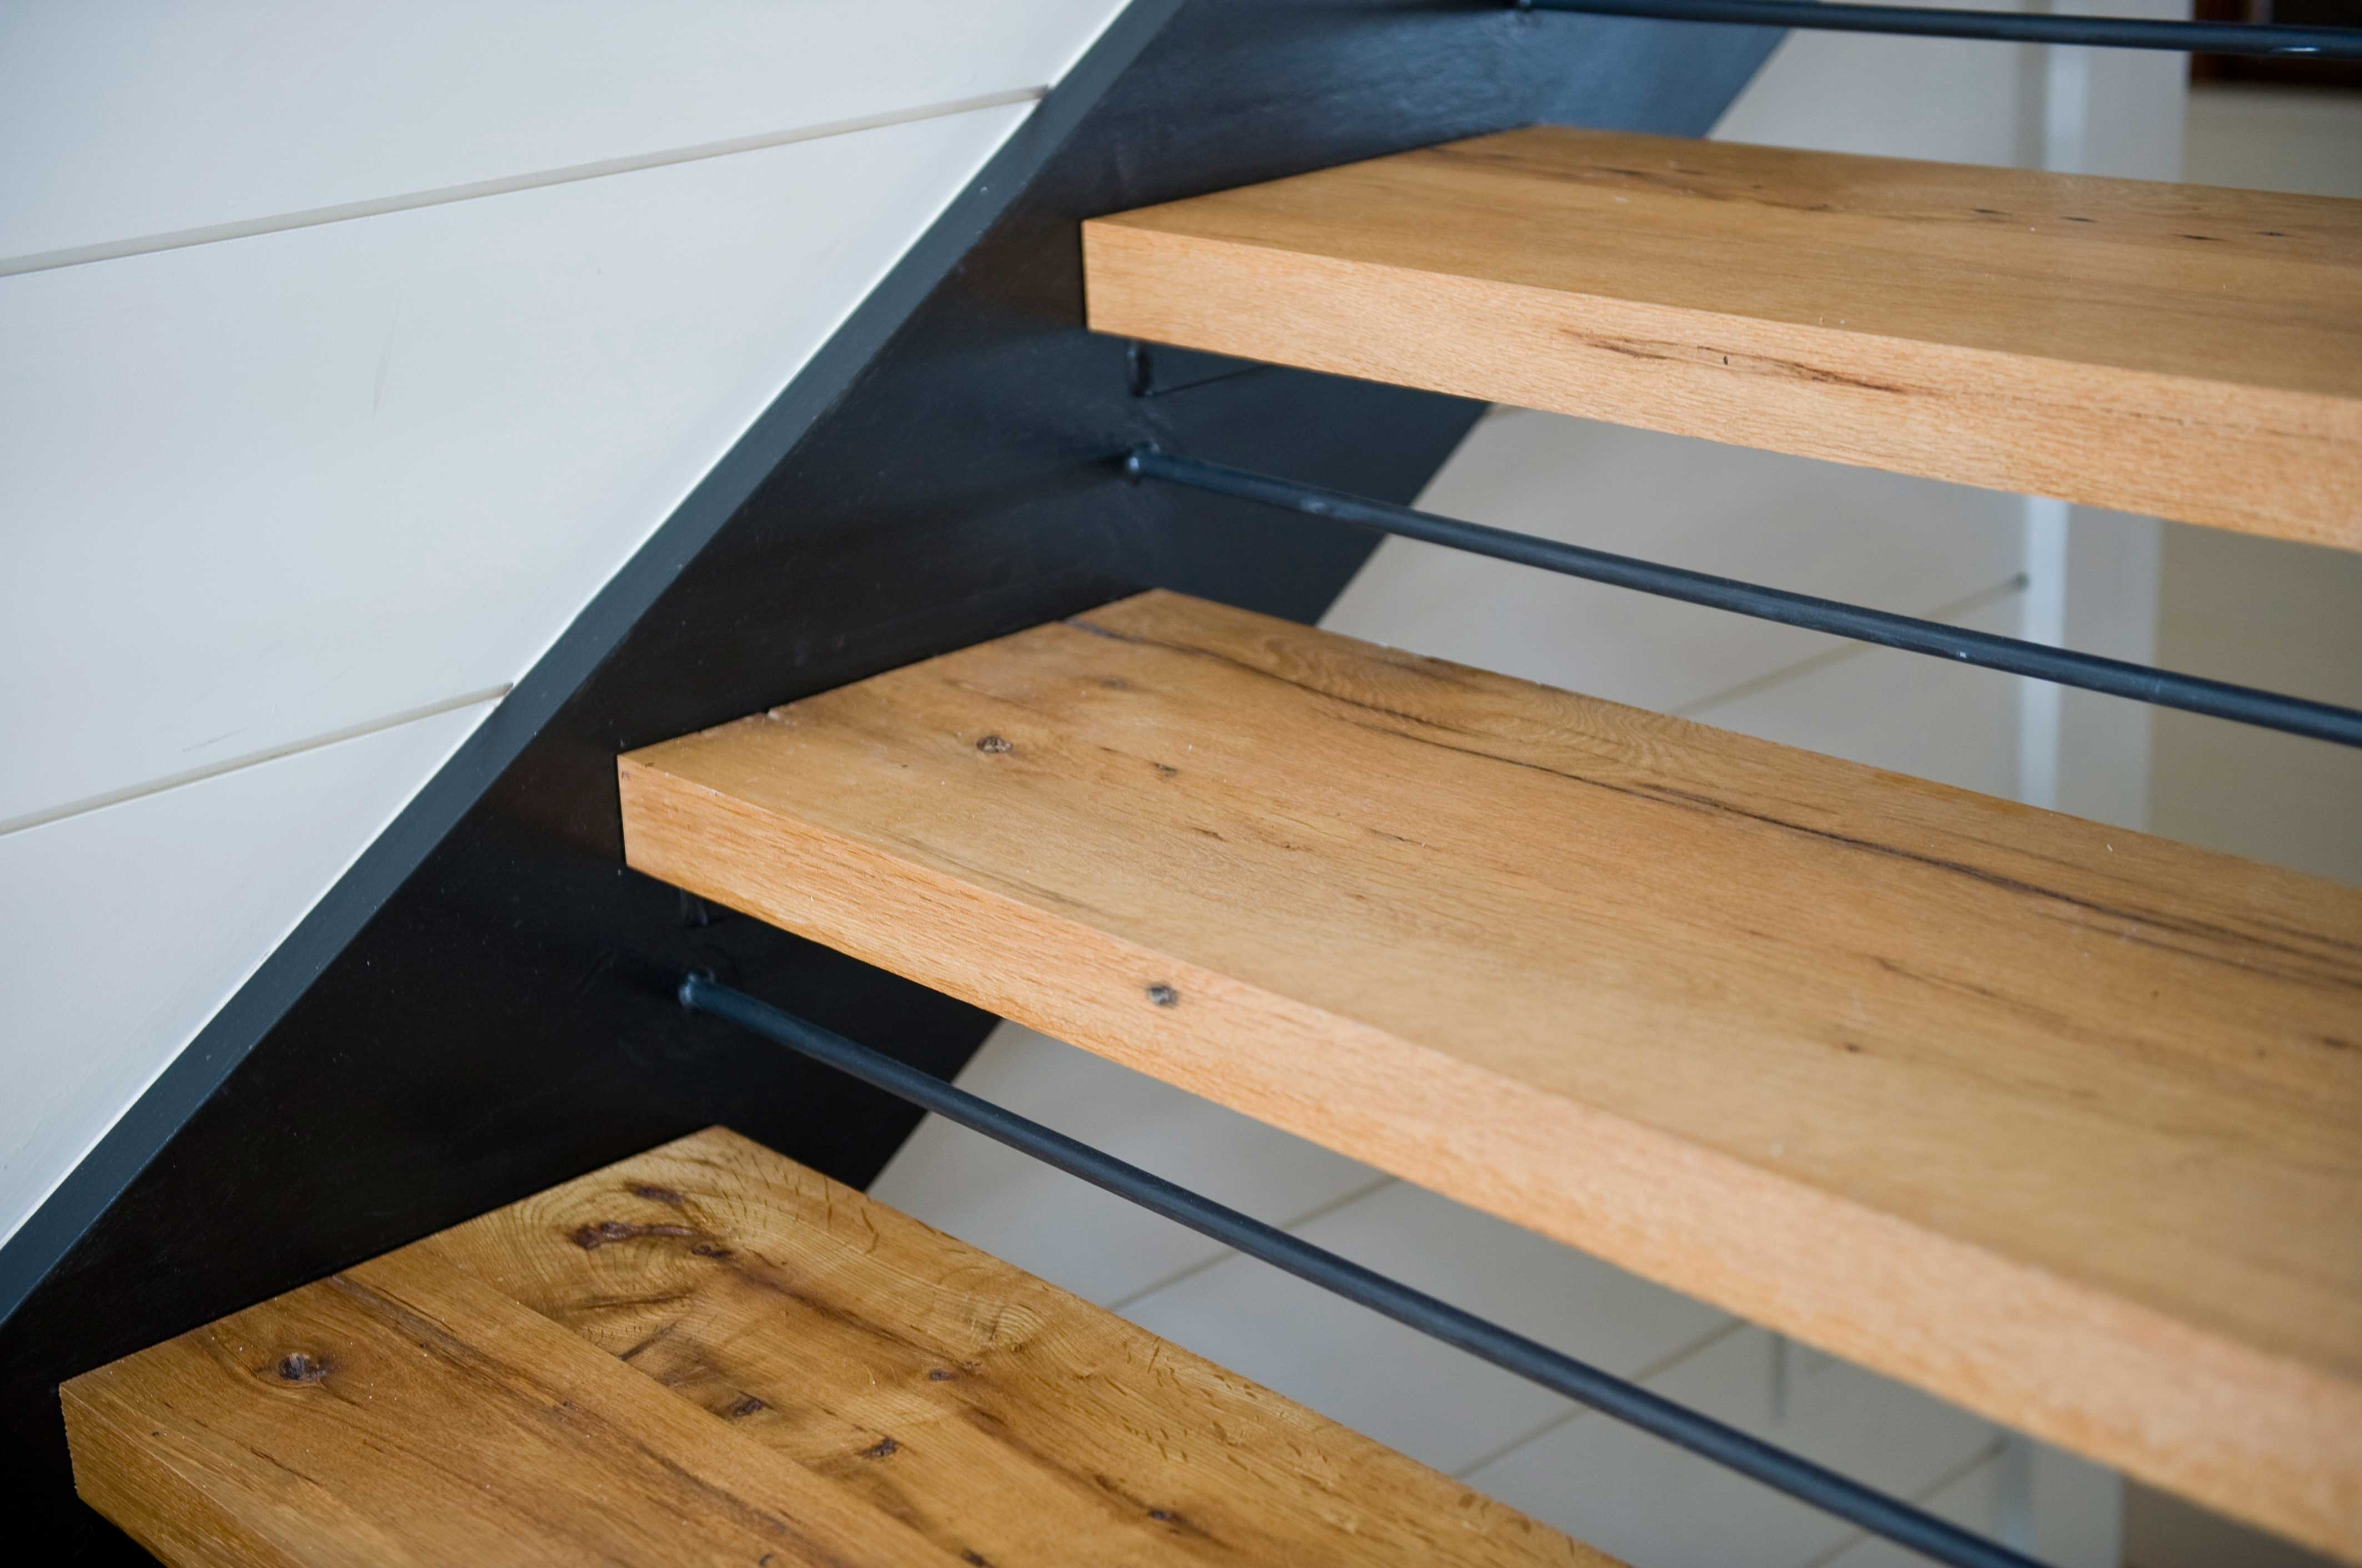 Longleaf Lumber Custom Reclaimed Wood Stair Treads Mouldings Pertaining To Contemporary Stair Treads (View 4 of 15)